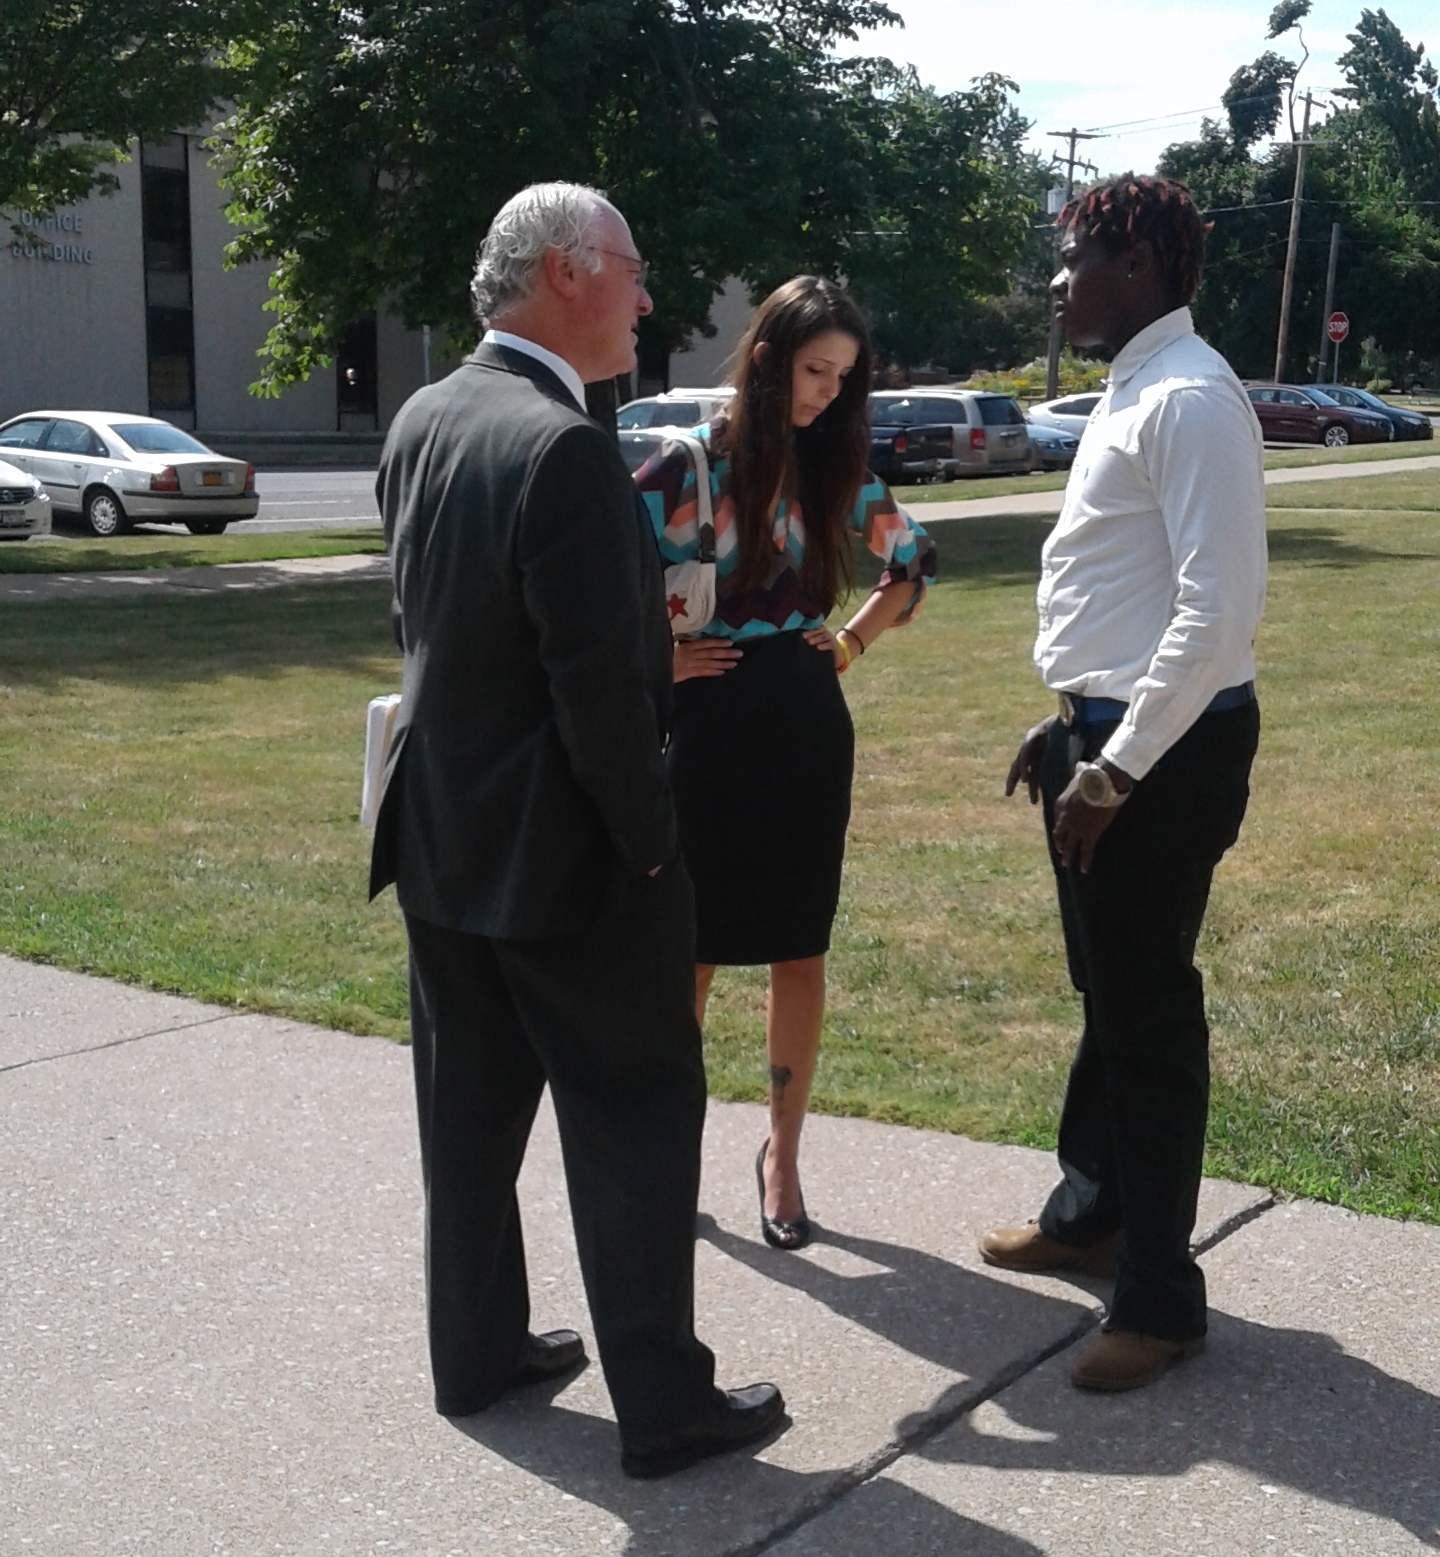 Gia M. Arnold, center, and Halim Johnson, right, confer with attorney James M. Ostrowski in Lockport on July 20, 2016. (Thomas J. Prohaska/Buffalo News)